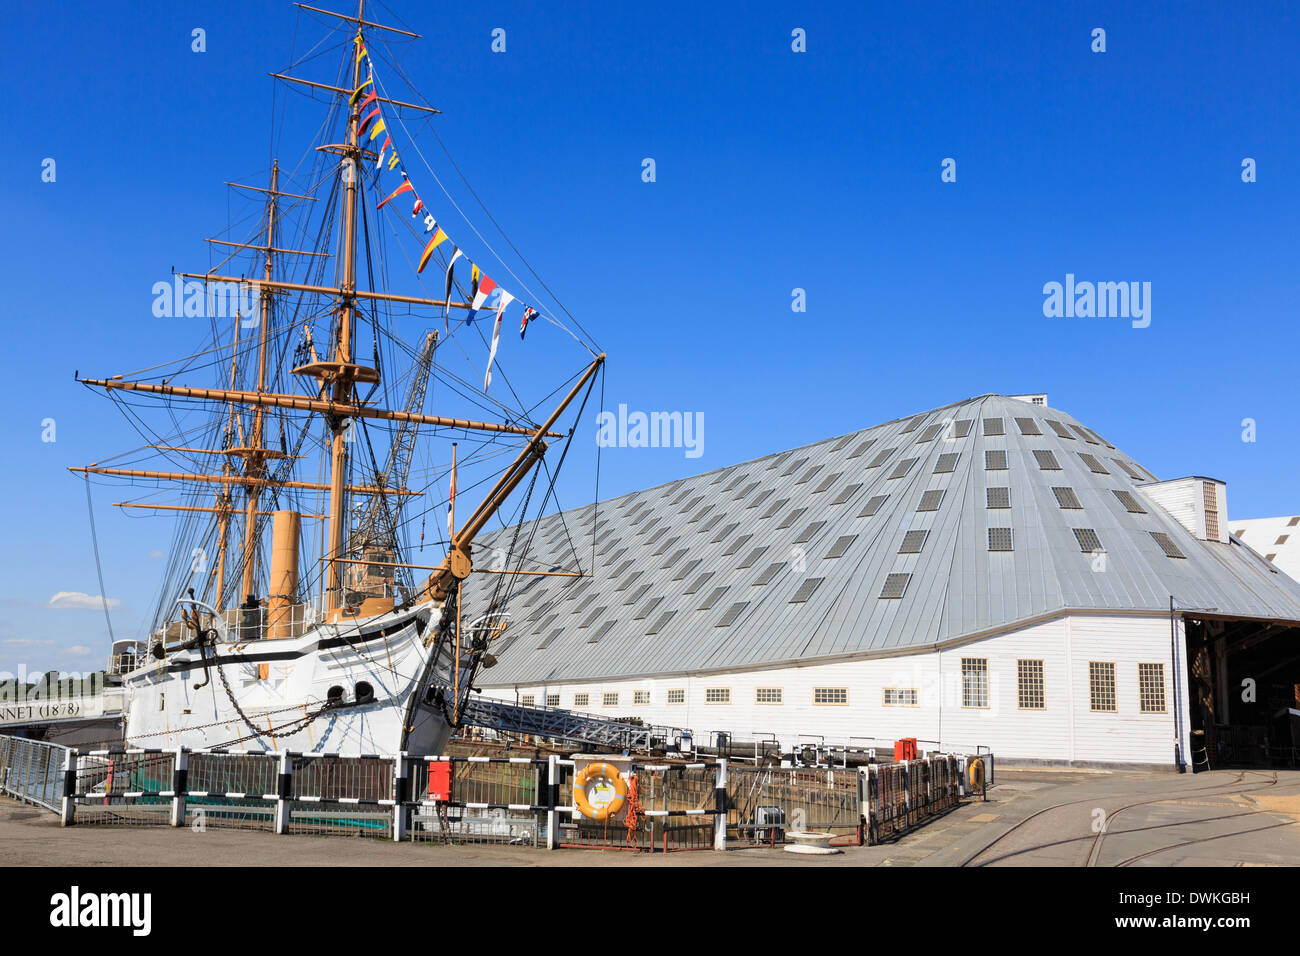 HMS Gannet with The Big Space building beyond at maritime heritage museum in Historic Dockyard at Chatham, Kent, England, UK - Stock Image